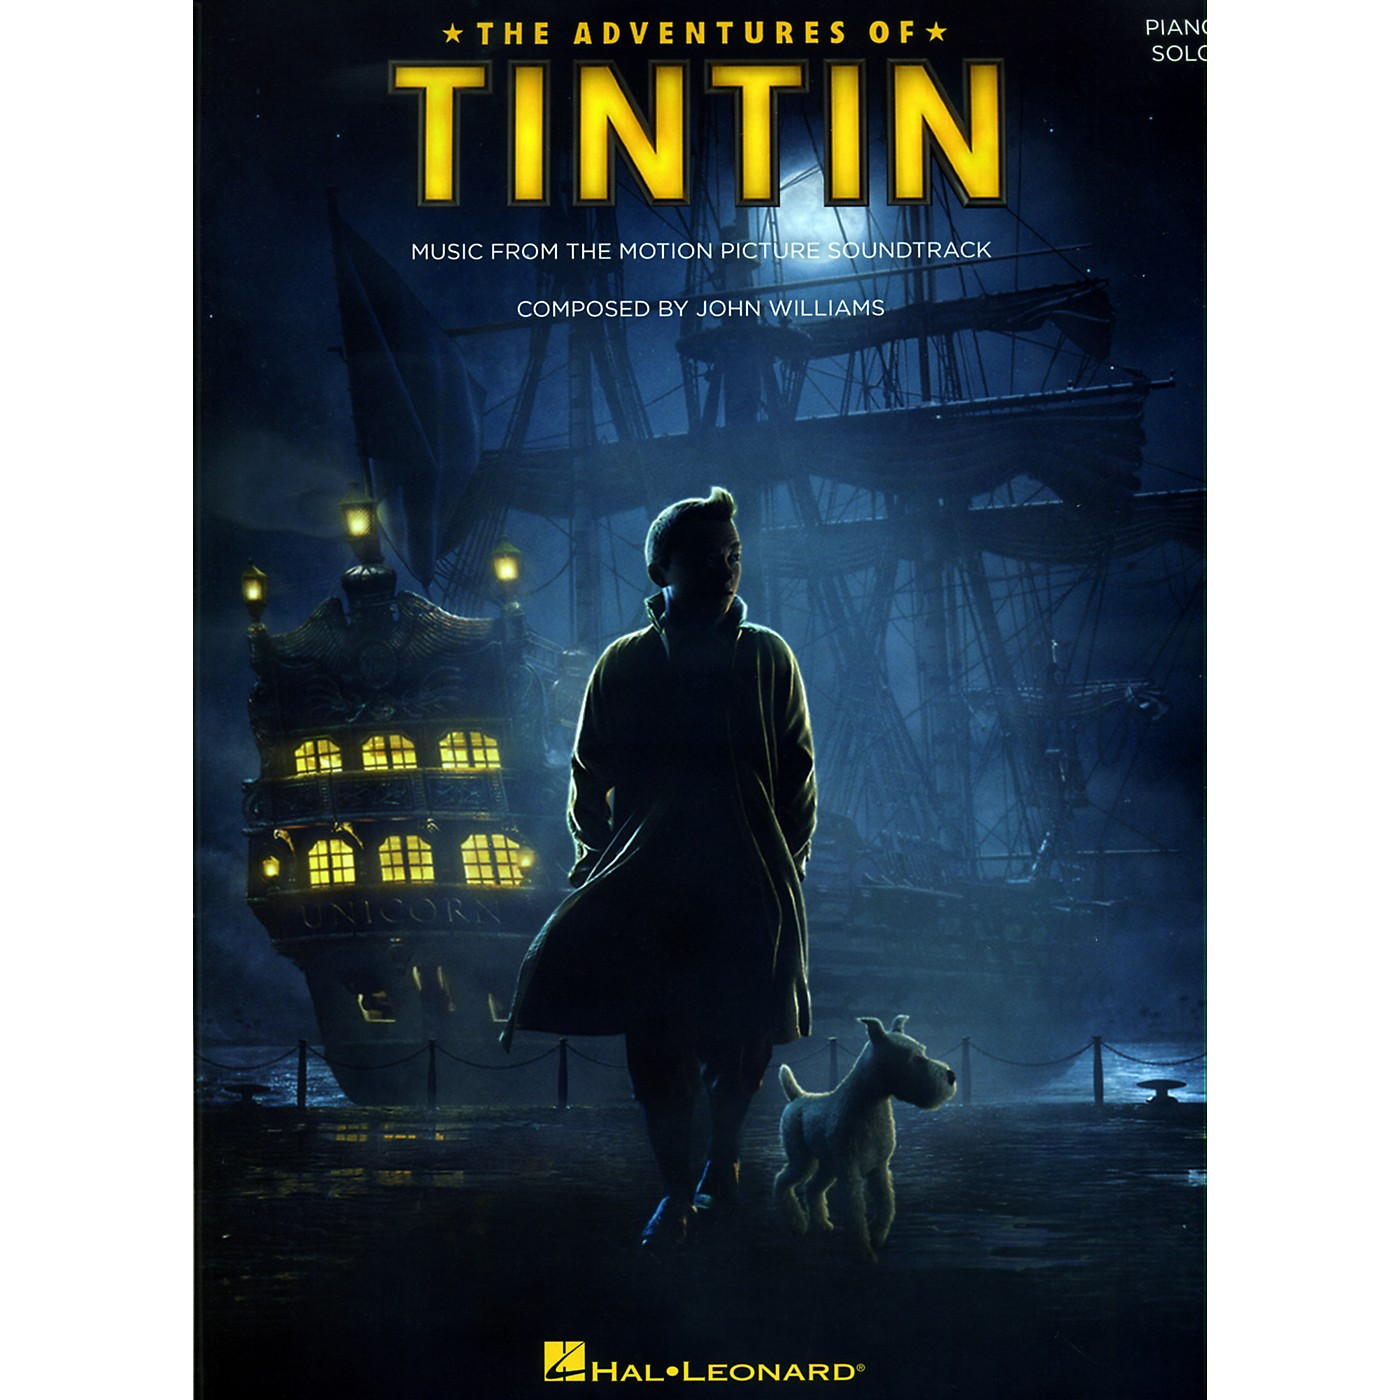 Hal Leonard The Adventures Of Tintin - Music From The Motion Picture Soundtrack for Piano Solo thumbnail